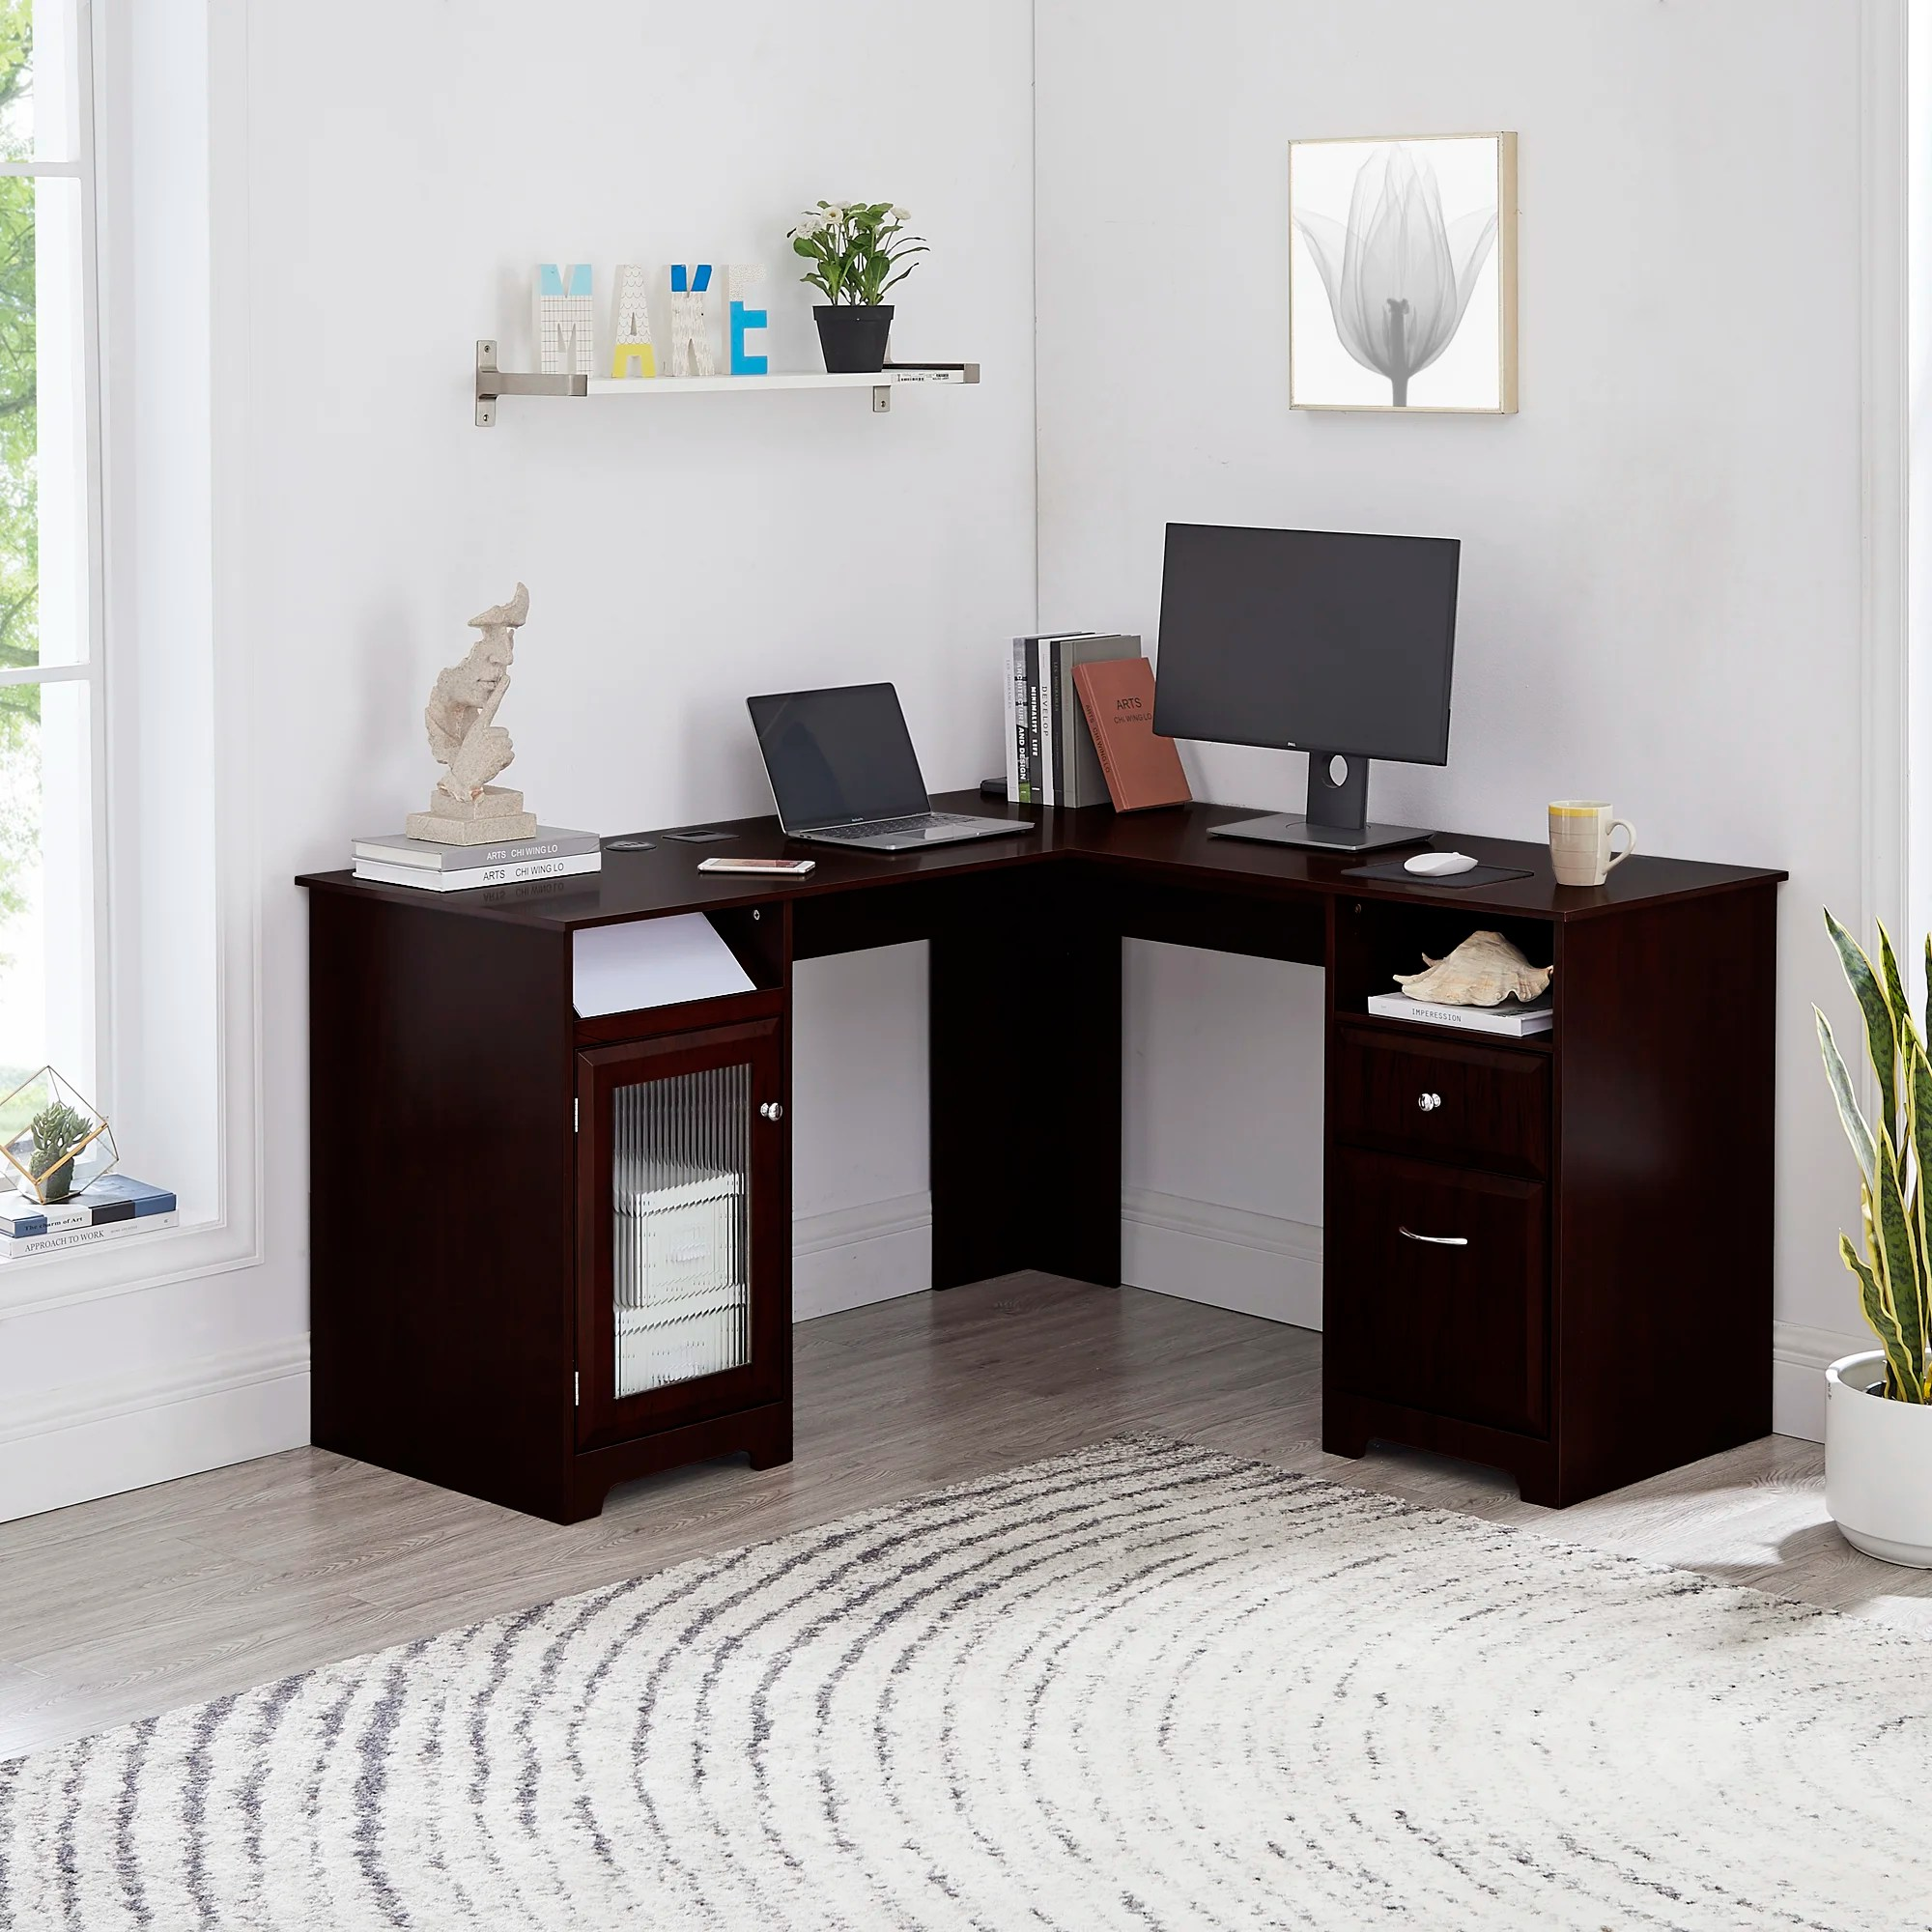 Upper Square Carlton Home Office L Shaped Executive Desk Reviews Wayfair